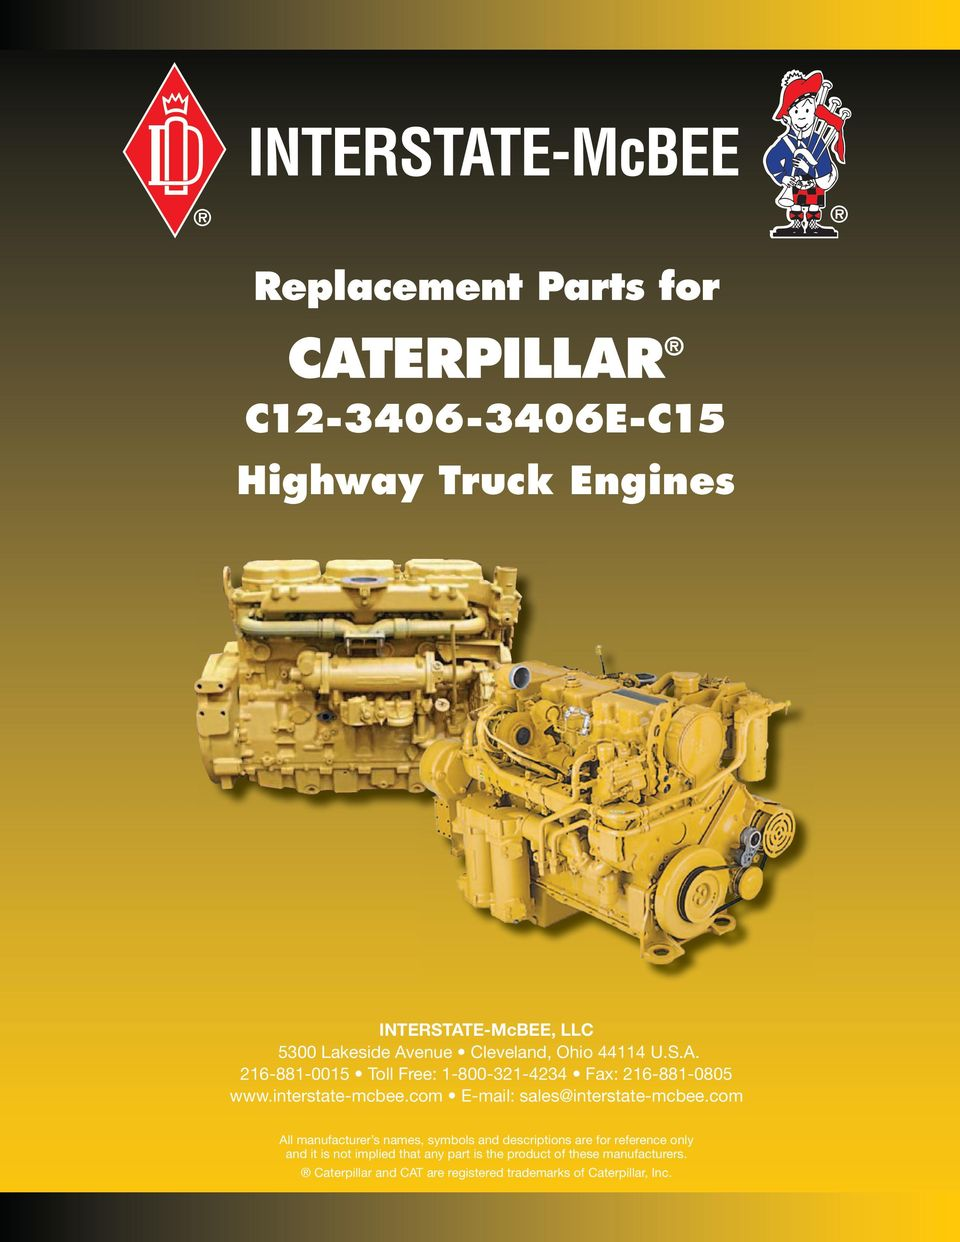 Replacement Parts for CATERPILLAR  C E-C15 Highway Truck